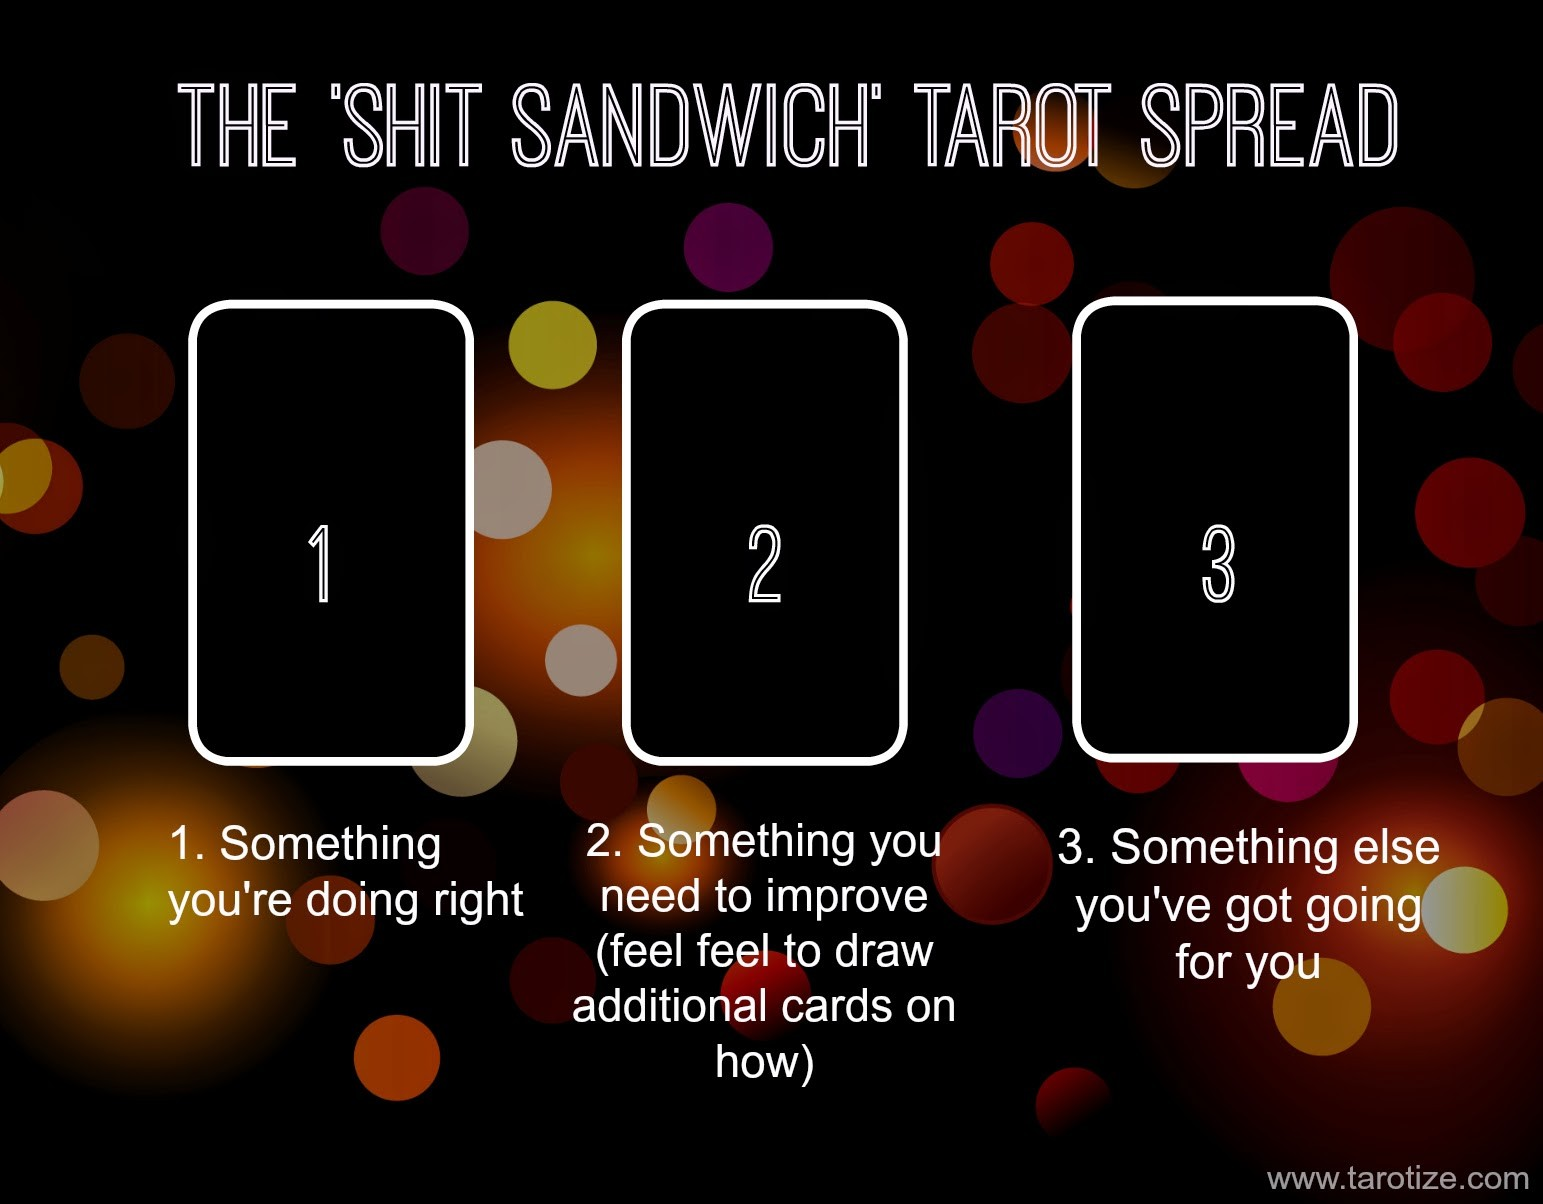 The Shit Sandwich Tarot Spread